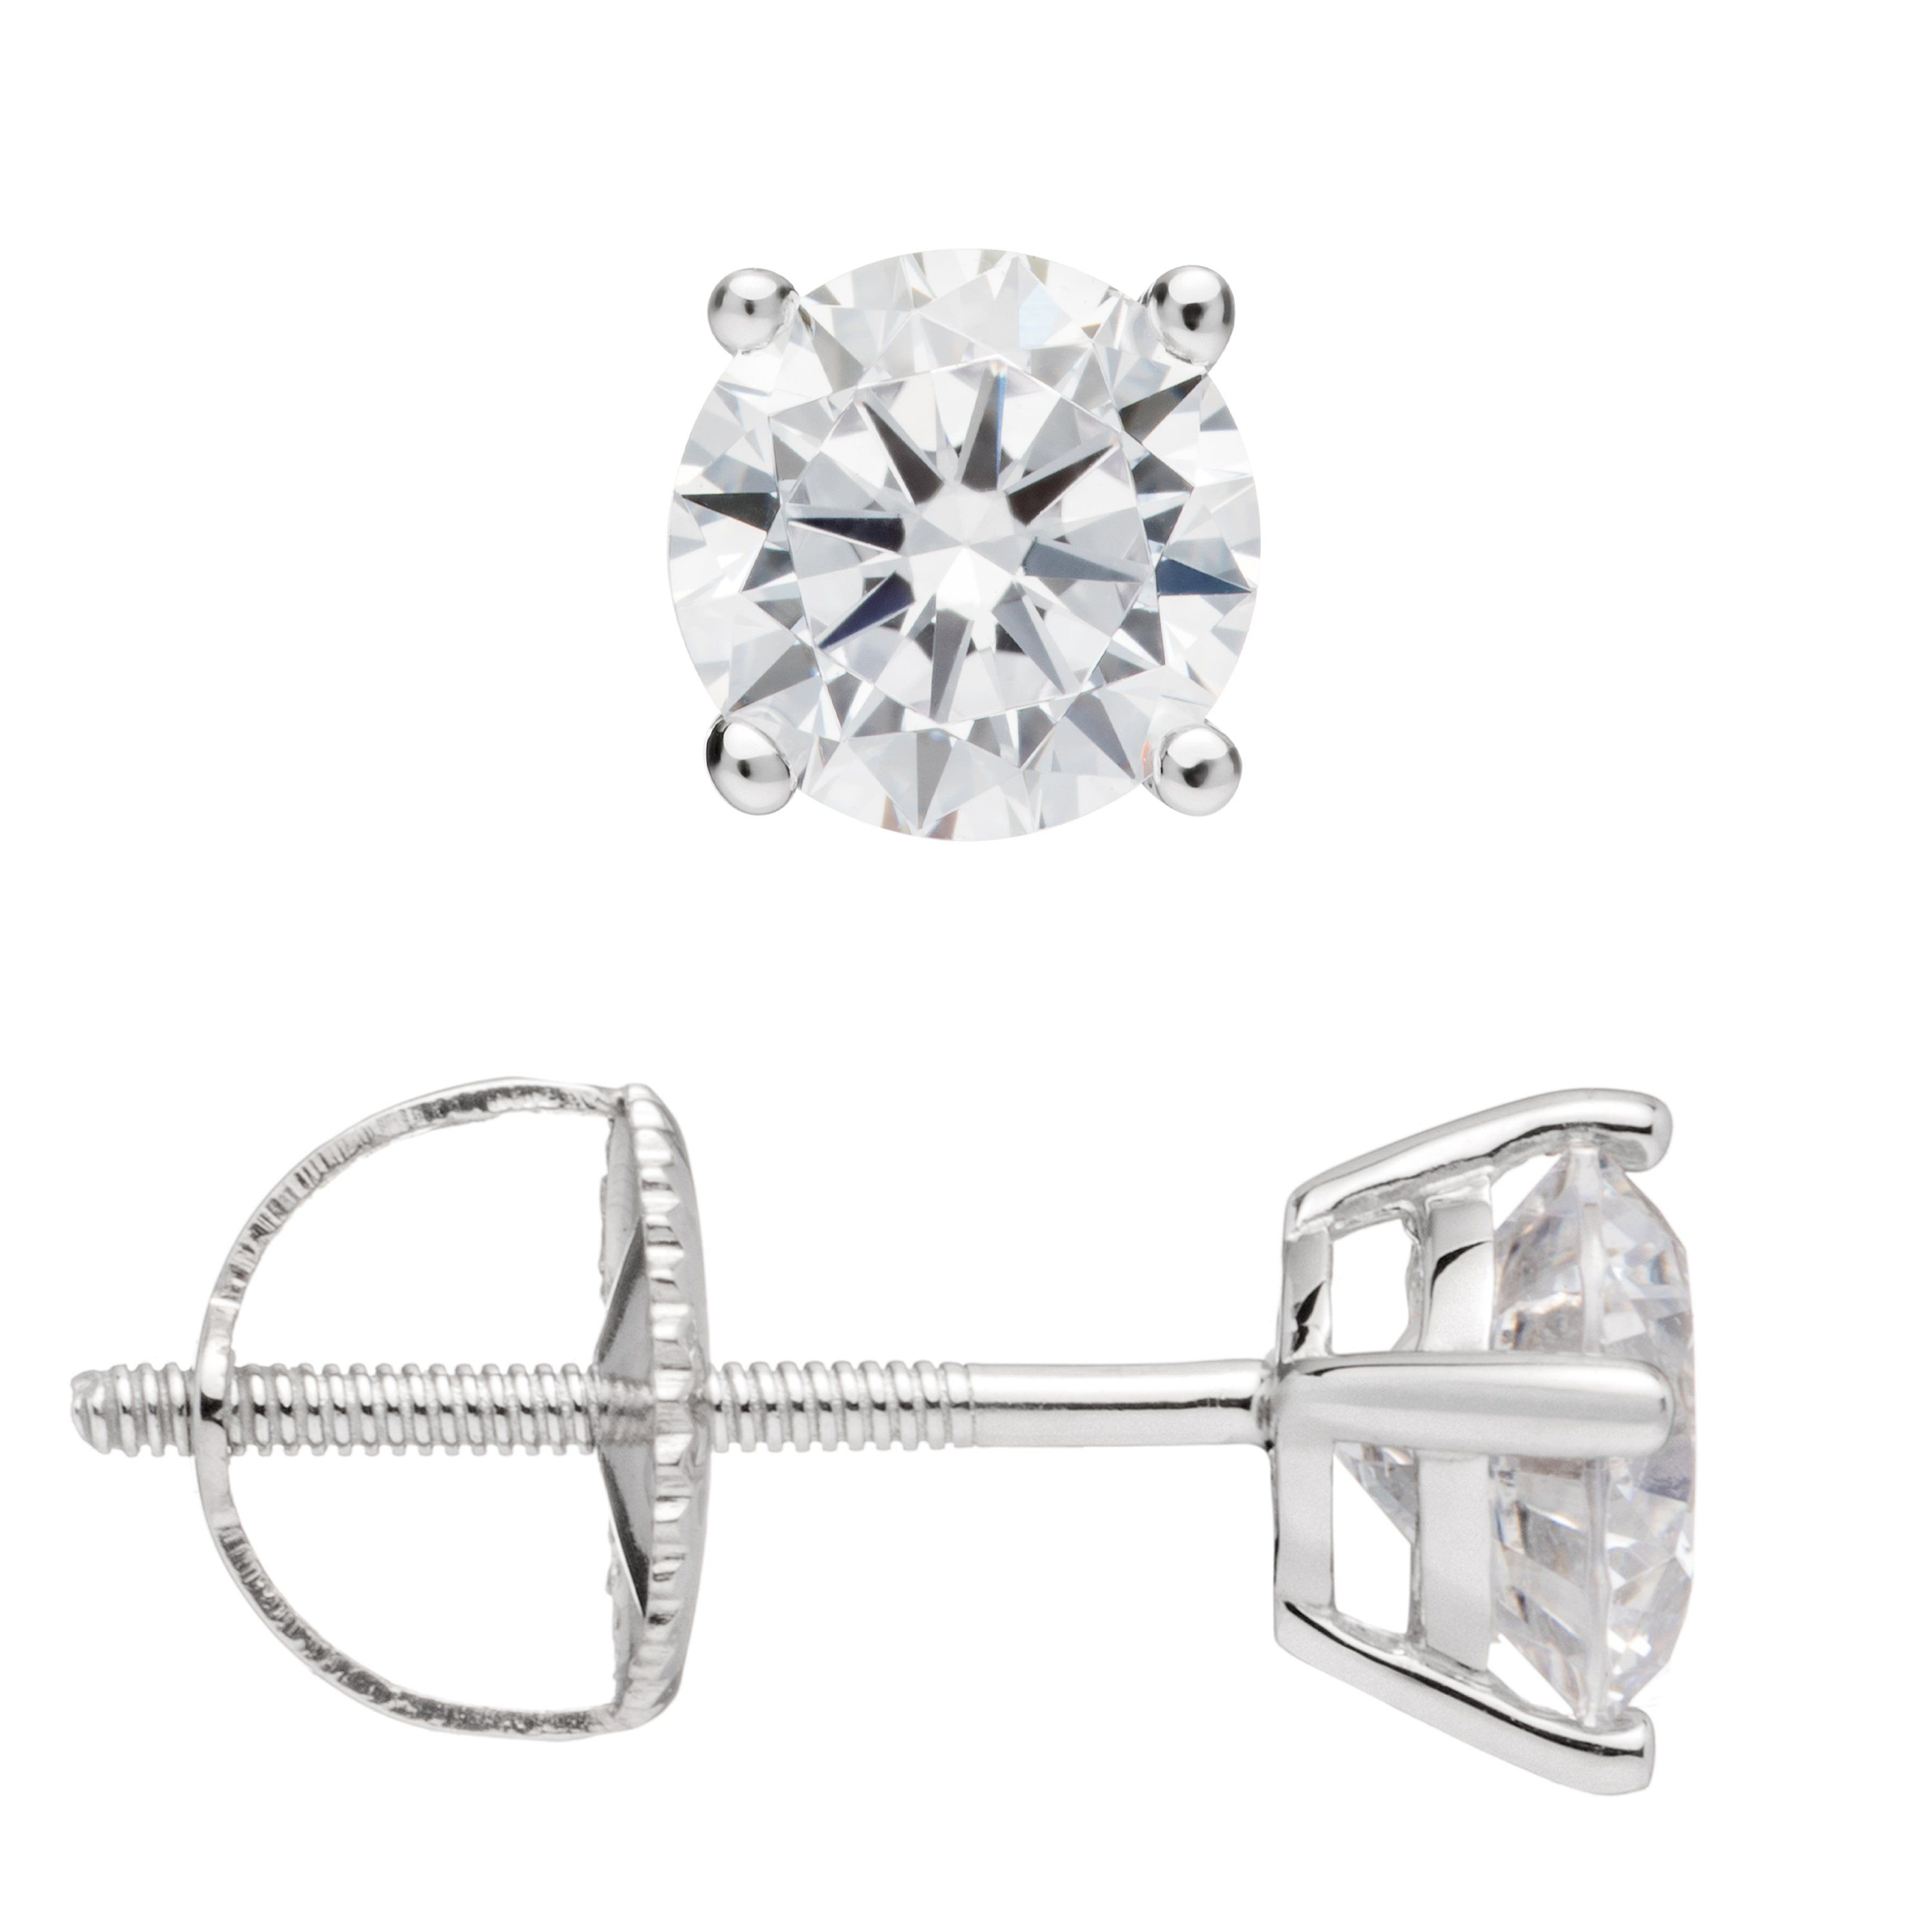 c68fdd64aa9 14K Solid White Gold Round Cut Cubic Zirconia Stud Earrings